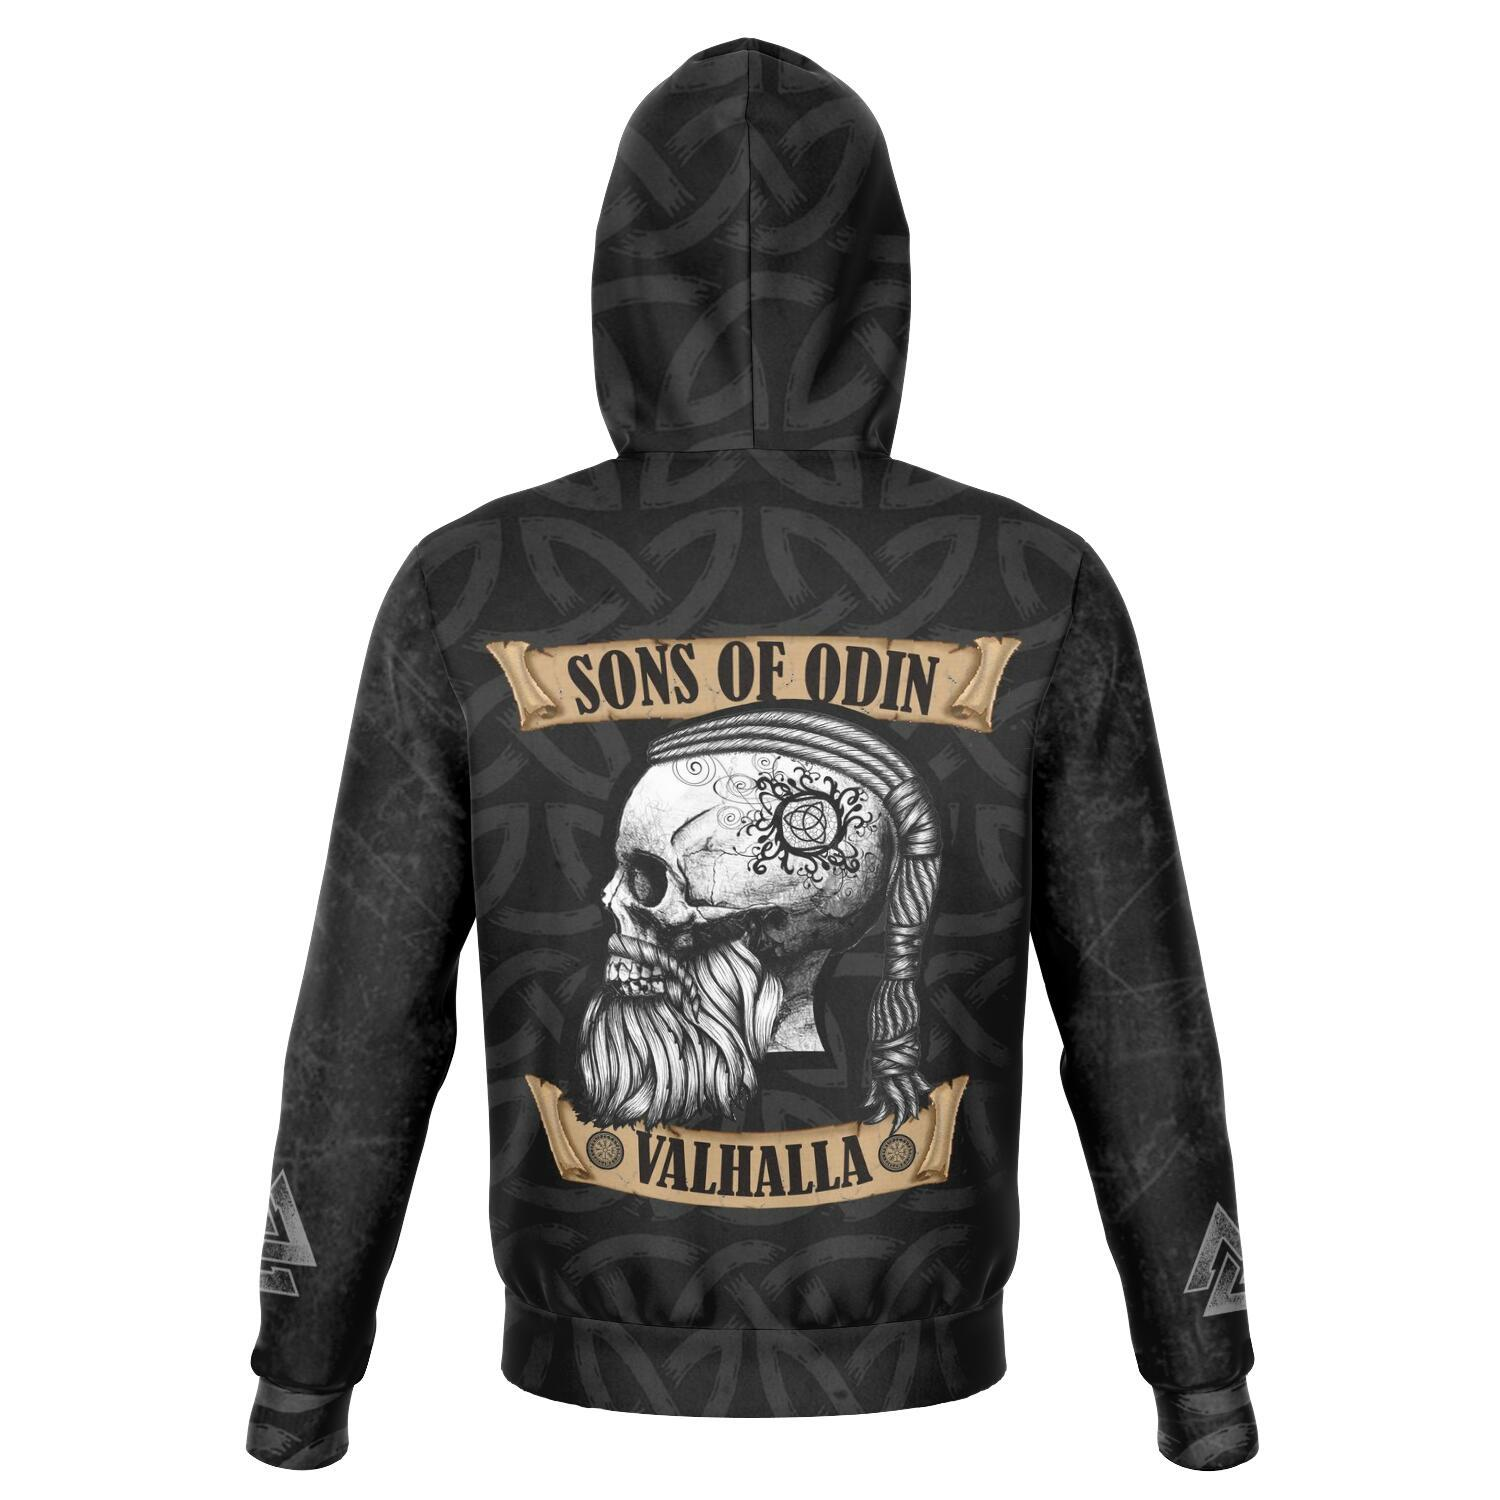 Sons of Odin, Valhalla - Ragnar Head Unisex Hoodie